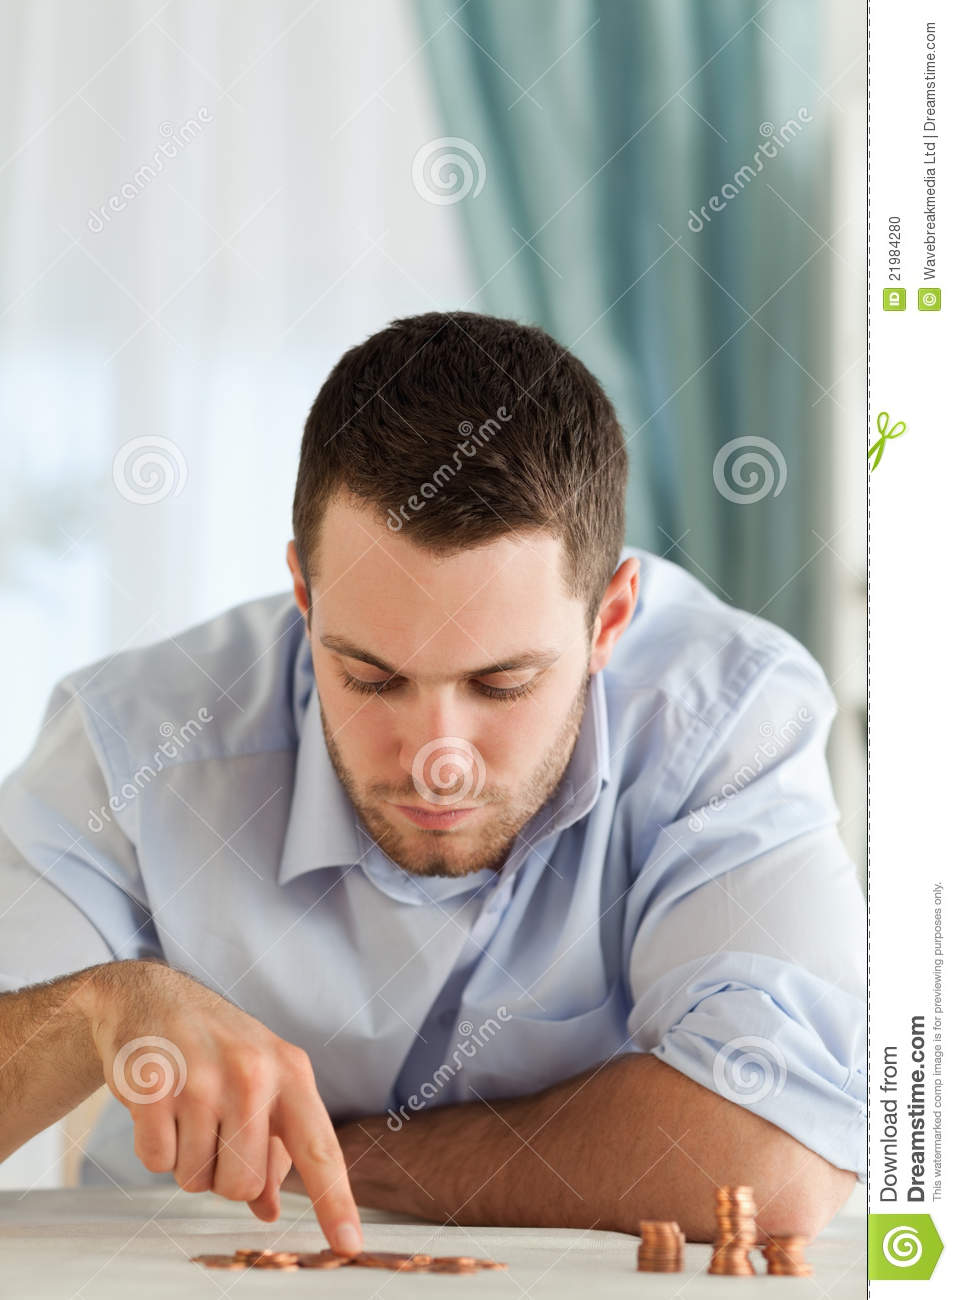 worksheet Counting Change businessman counting change stock photo image 21984280 change